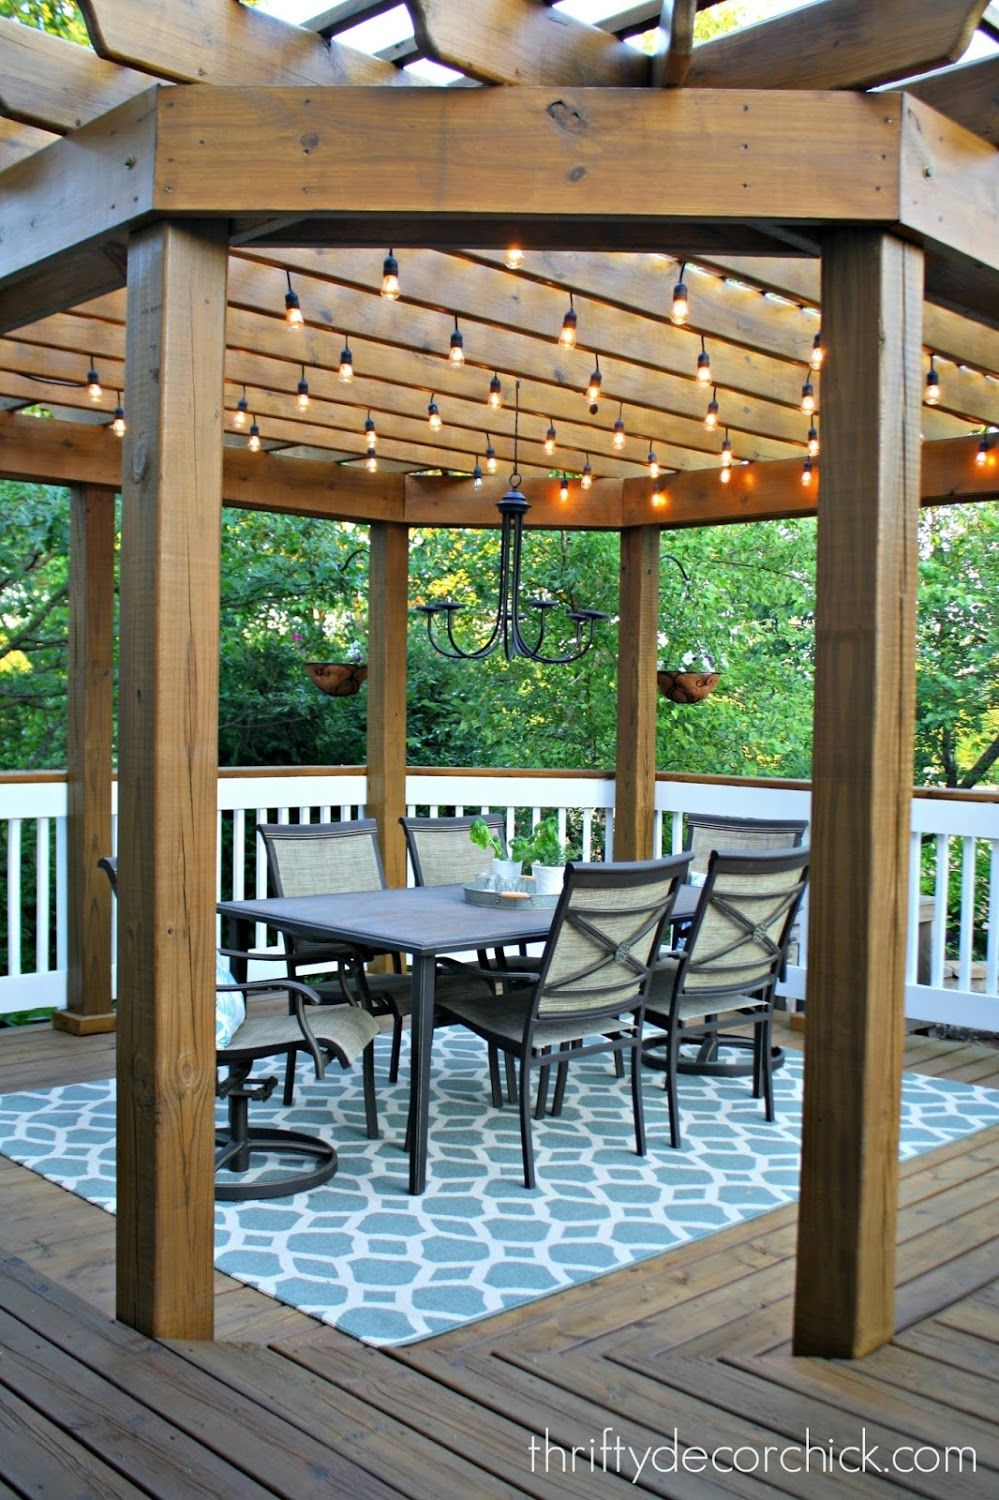 outdoor pergola lighting outdoor kitchen wood pergola on deck with party lights our home porchesdecks pinterest patio outdoor dining and pergola